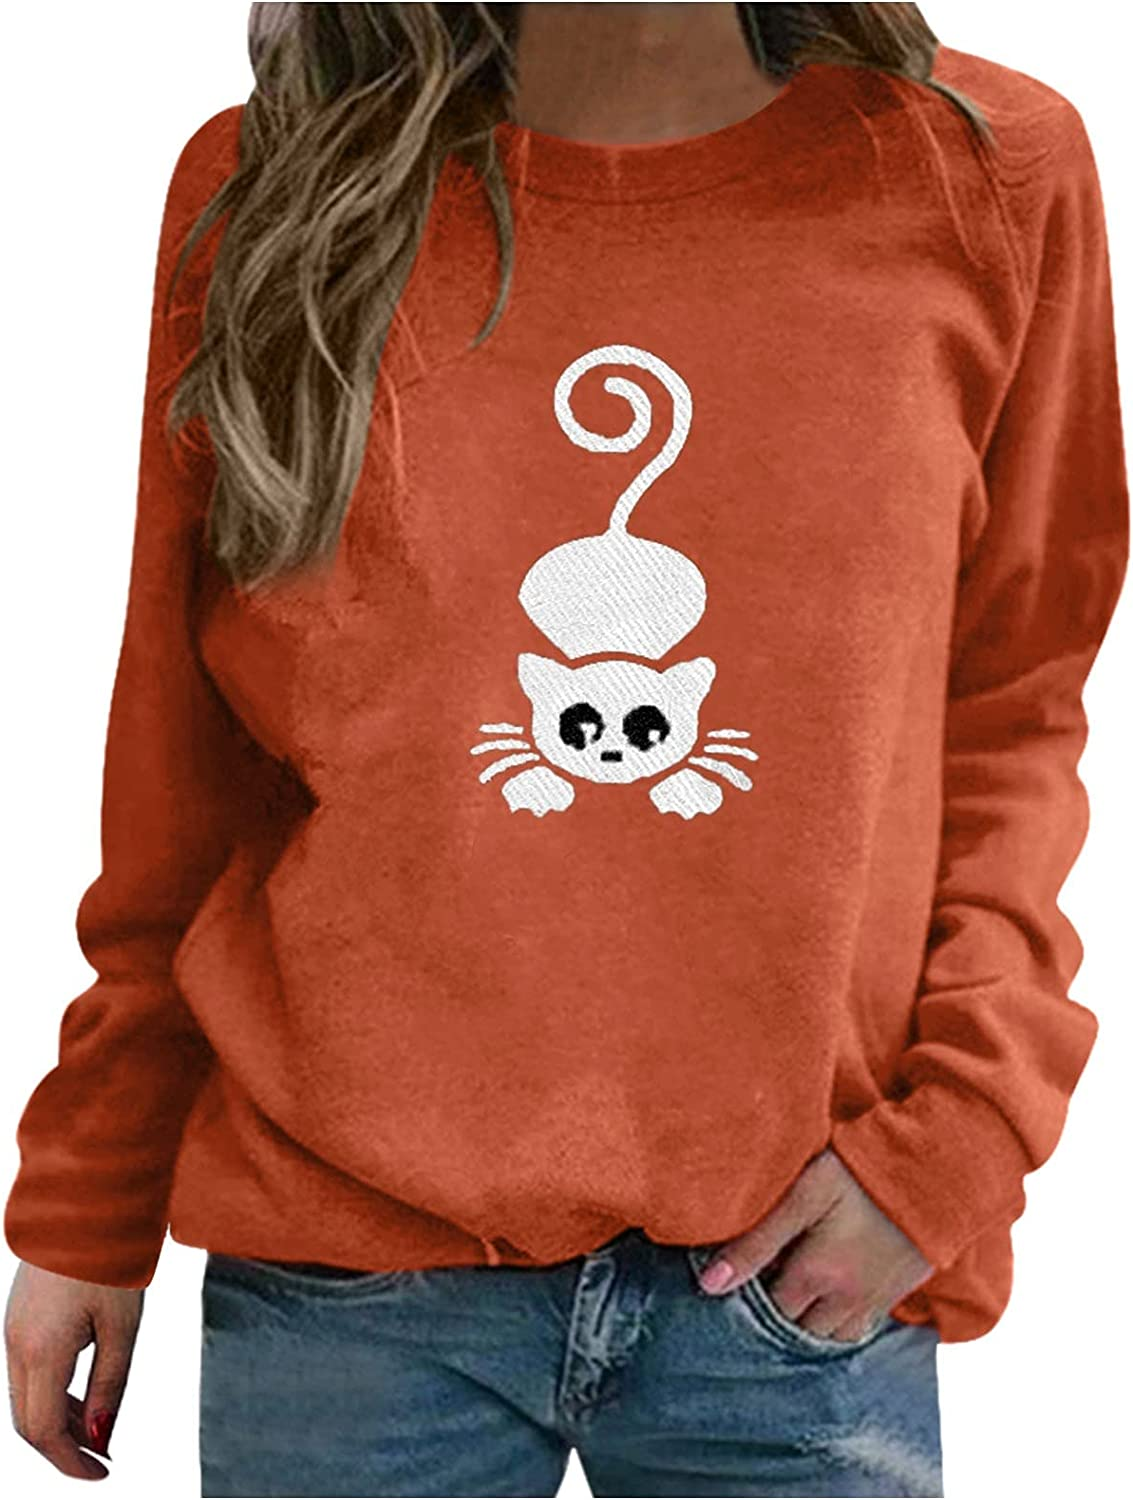 Oversized Sweatshirt for Women Long Sleeve Cat Graphic Aesthetic Loose Thin Pullover Casual Top Shirt for Teen Girls